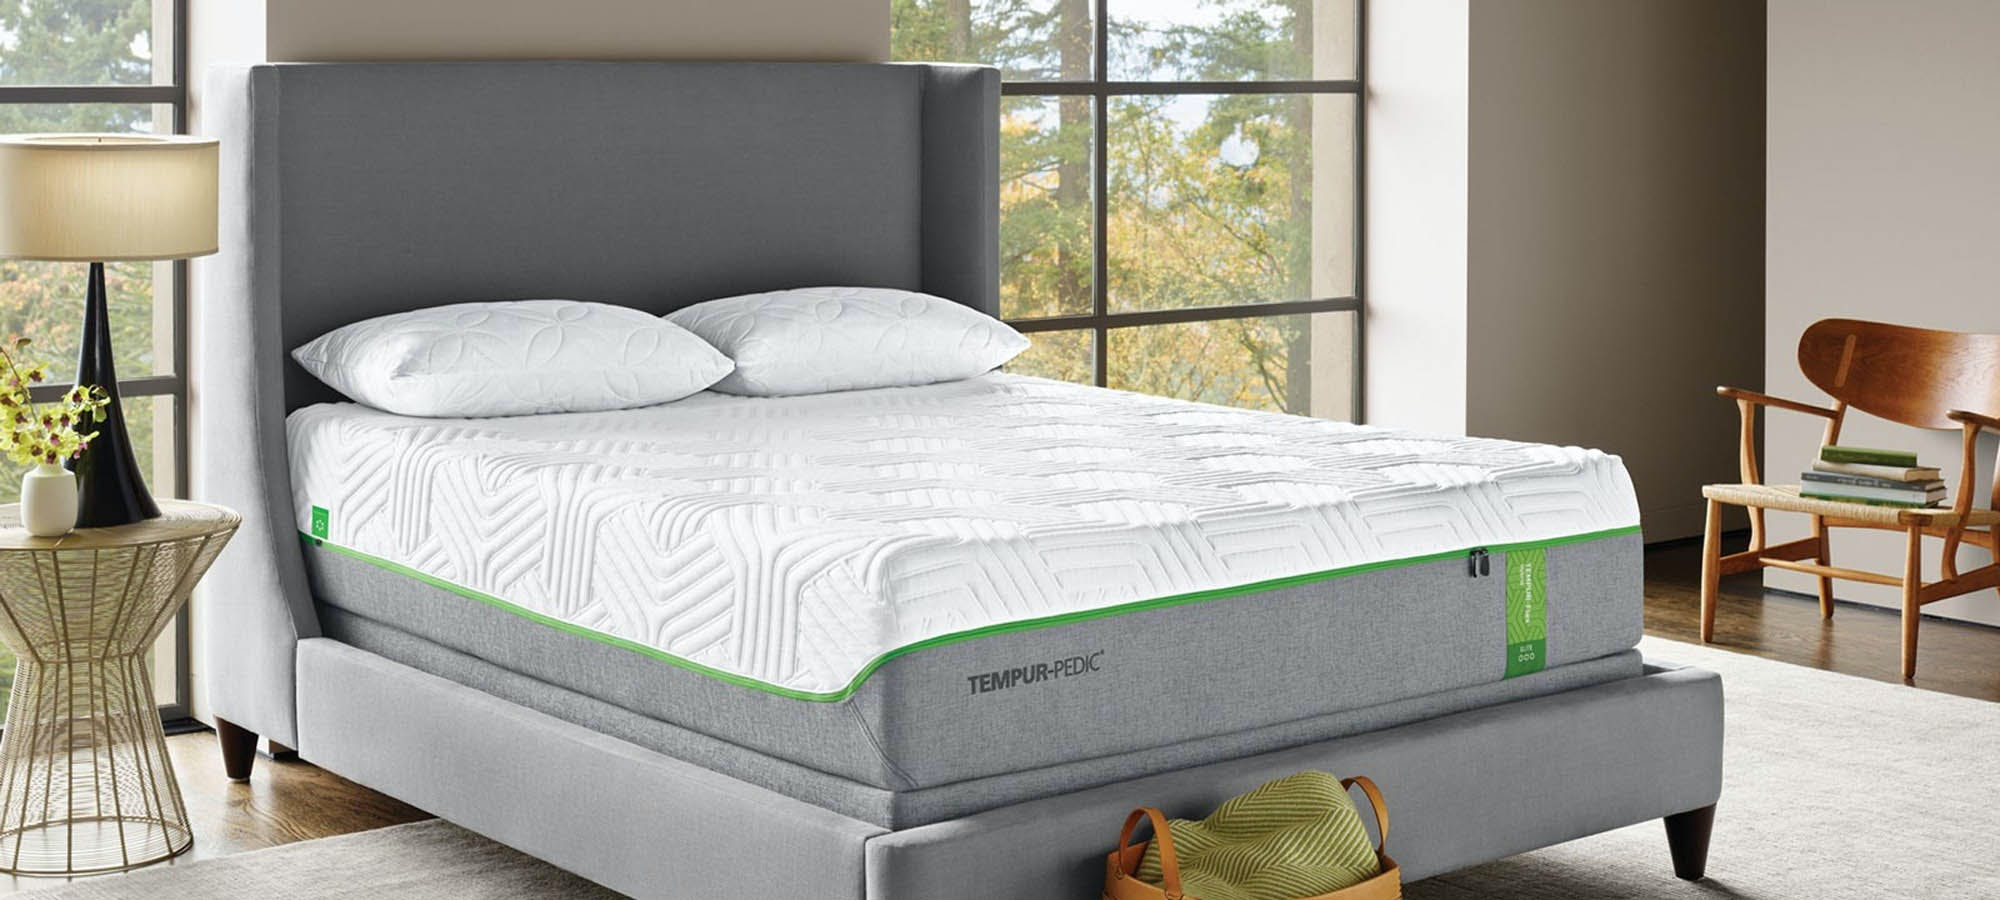 Shop for Mattresses in Cincinnati and Dayton OH